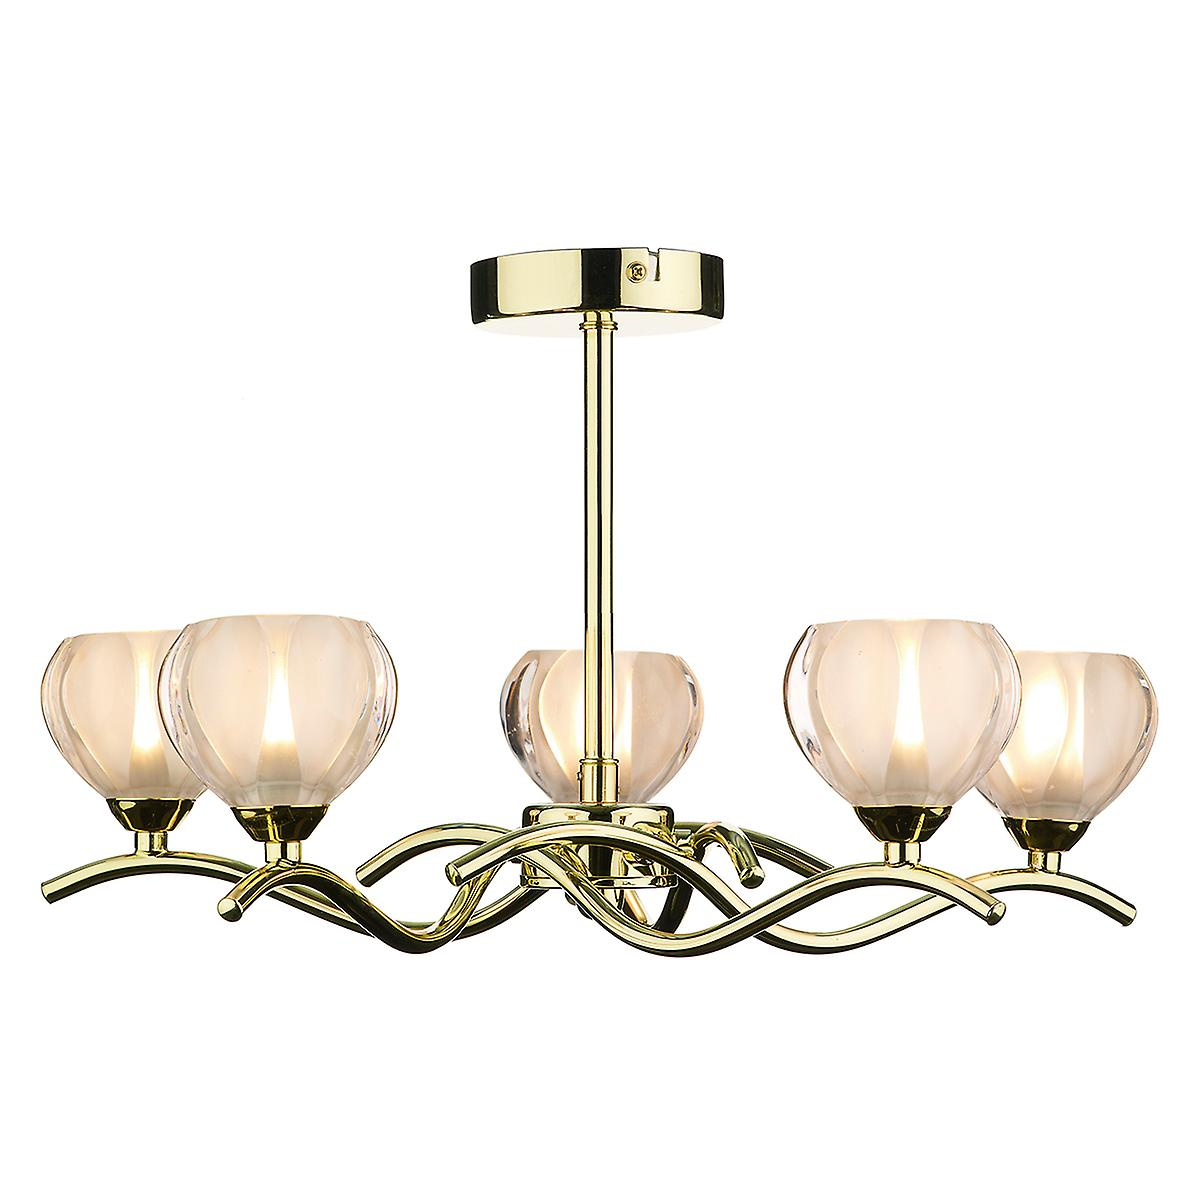 Dar CYN0540 Cynthia Traditional Brass 5 Arm Semi-Flush Ceiling Light With Glass